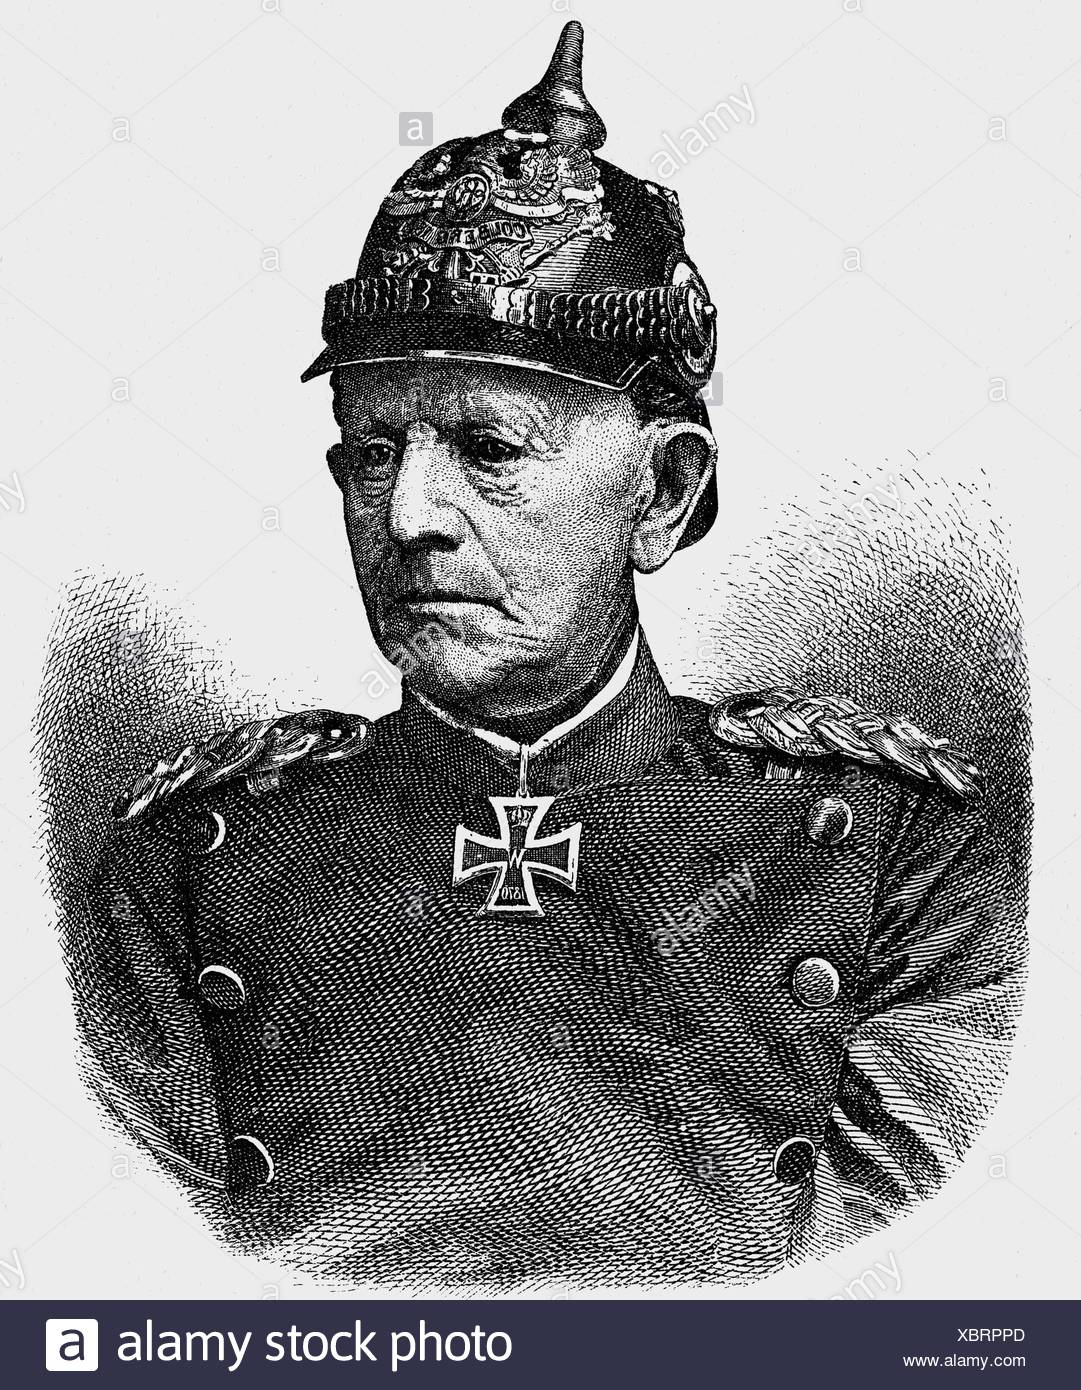 Moltke, Helmuth Karl von, 26.10.1800 - 24.4.1891, Prussian general, Chief of General Staff 1858 - 1888, portrait, wood engraving, late 19th century, , Additional-Rights-Clearances-NA - Stock Image